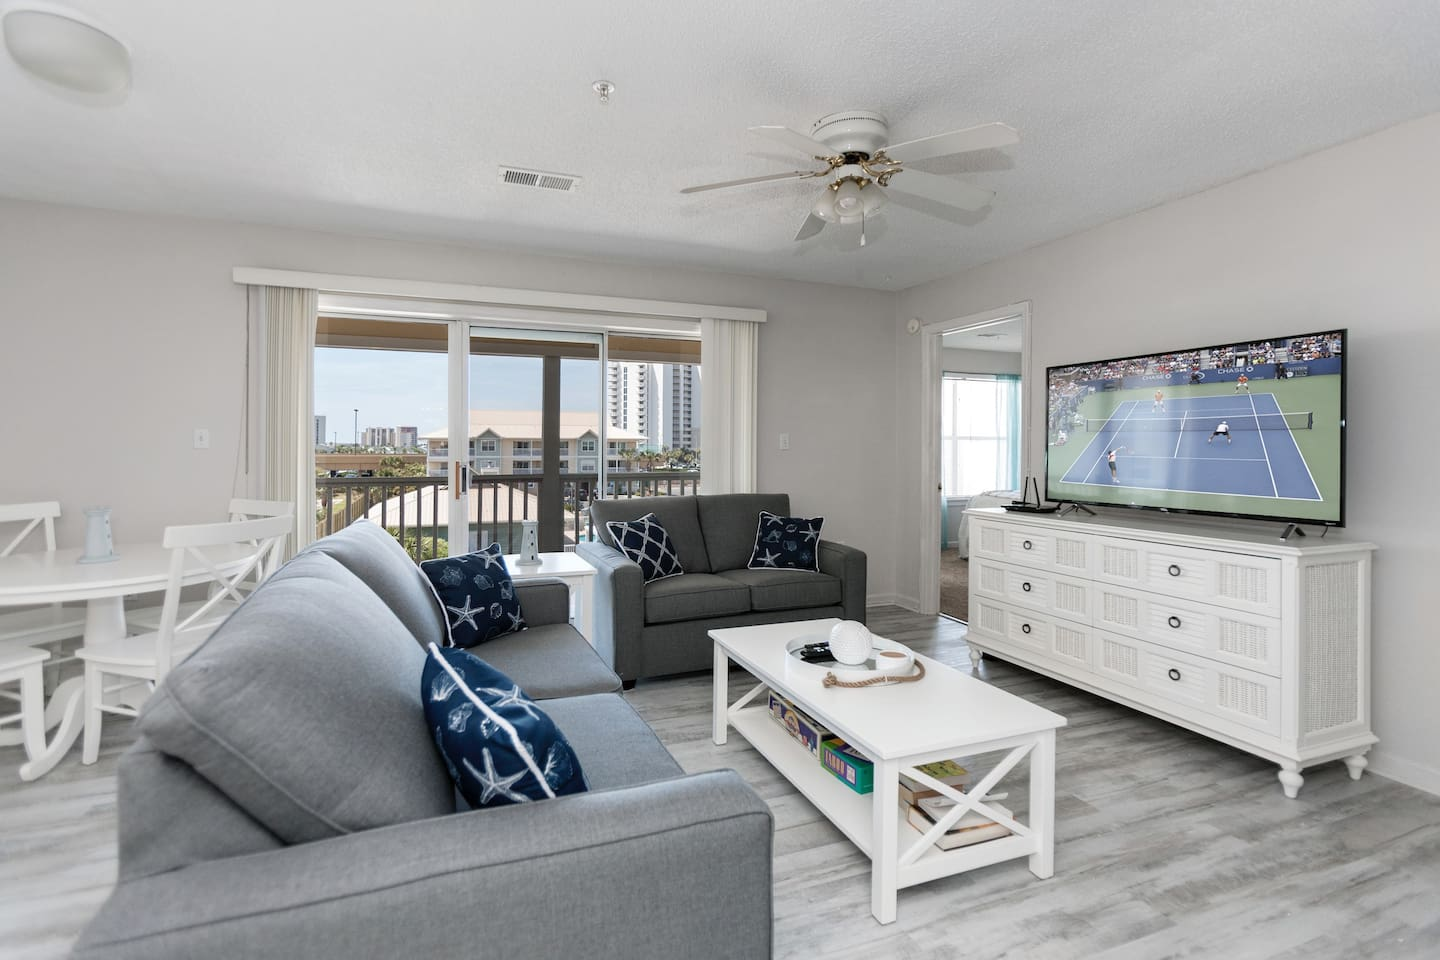 Welcome to Destin! This condo is professionally managed by TurnKey Vacation Rentals.